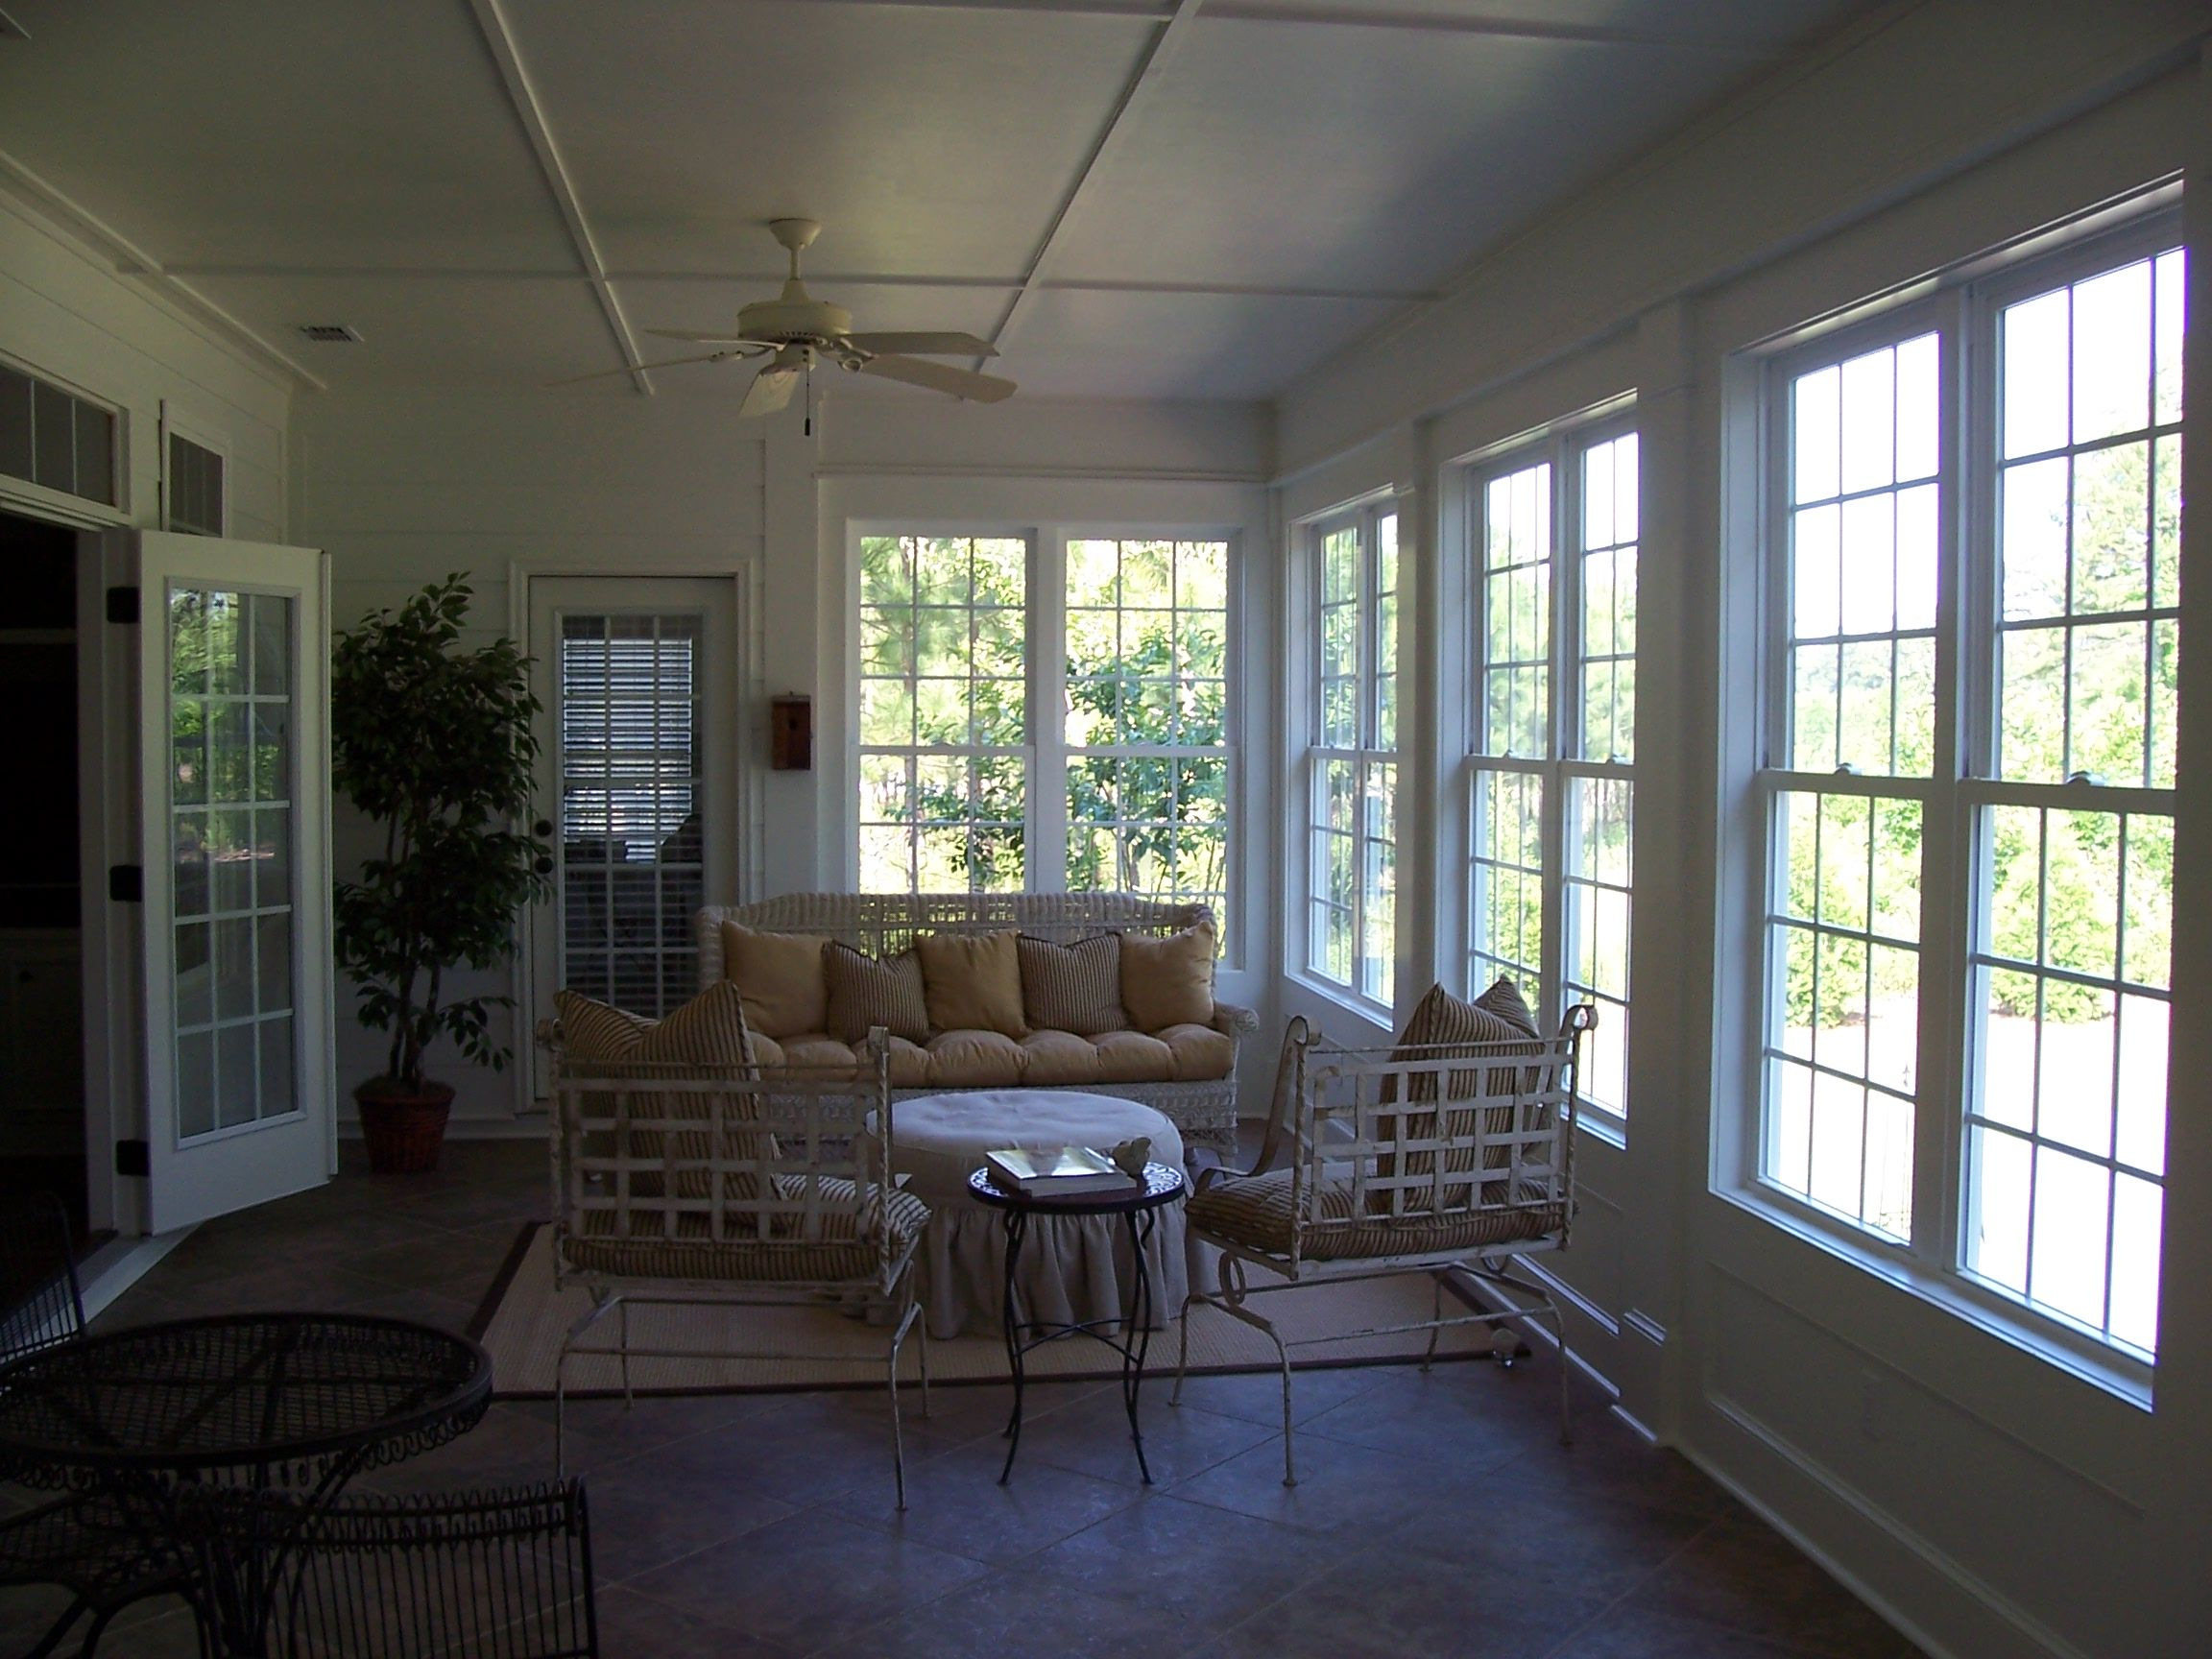 Remodel Project Screen Porch Before Being Converted Into A